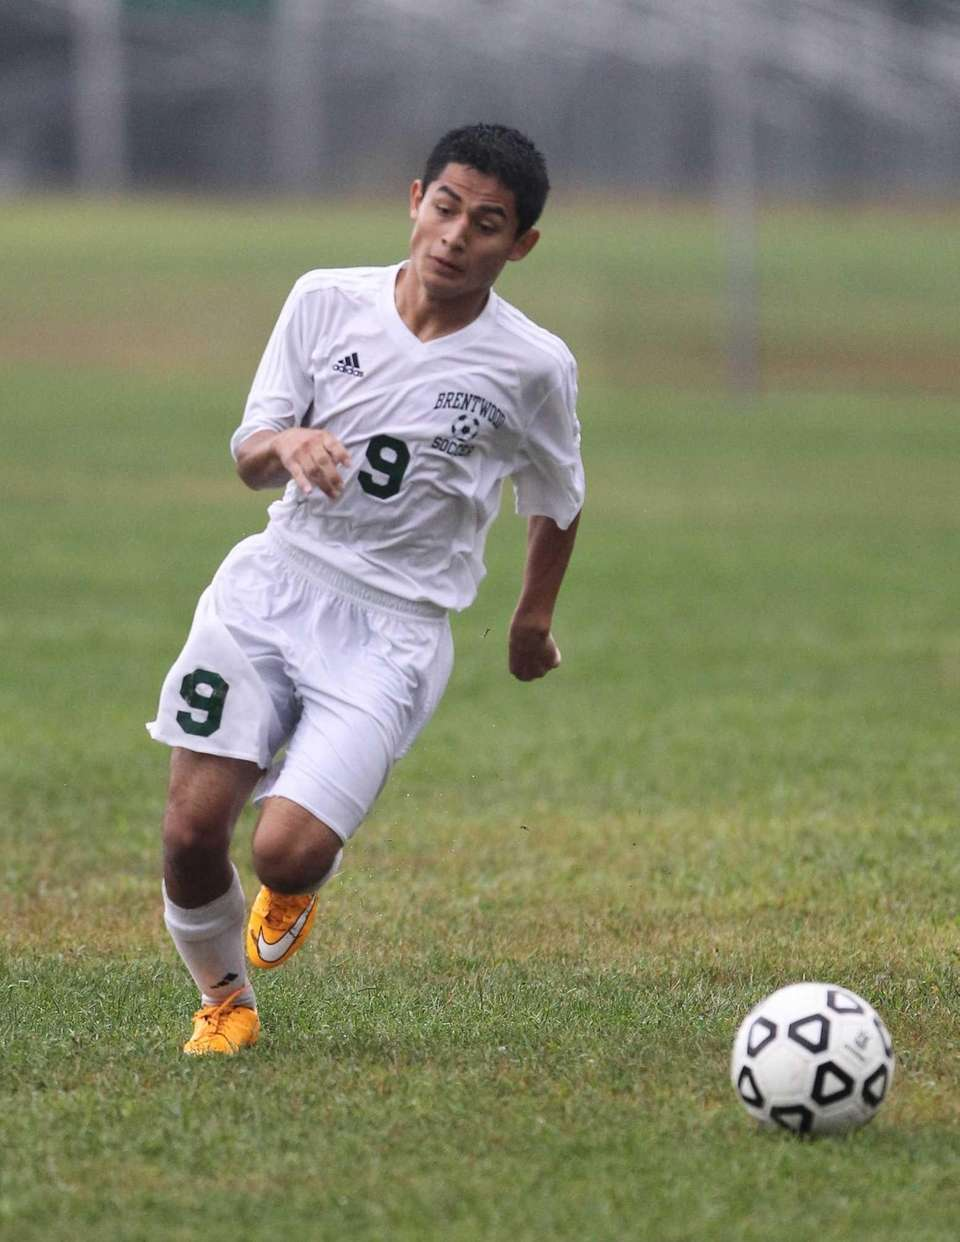 Brentwood's Kevin Trejo carries the ball in the